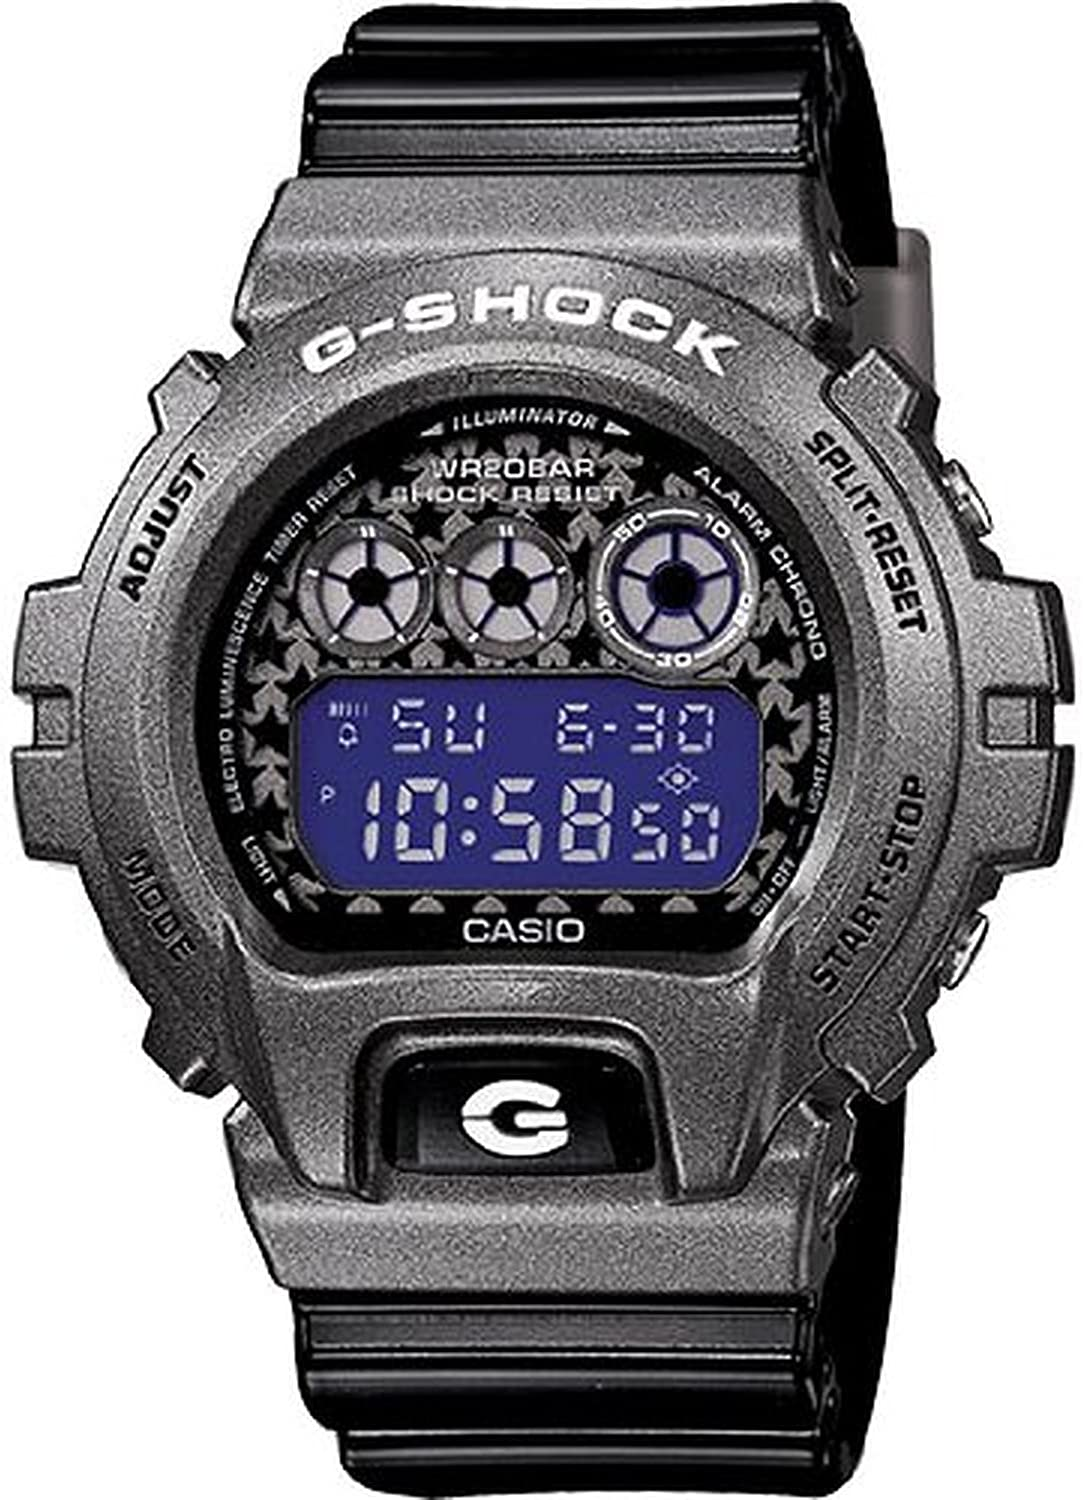 G-Shock DW-6900 Crazy Color Classic Series Men s Stylish Watch – Black One Size